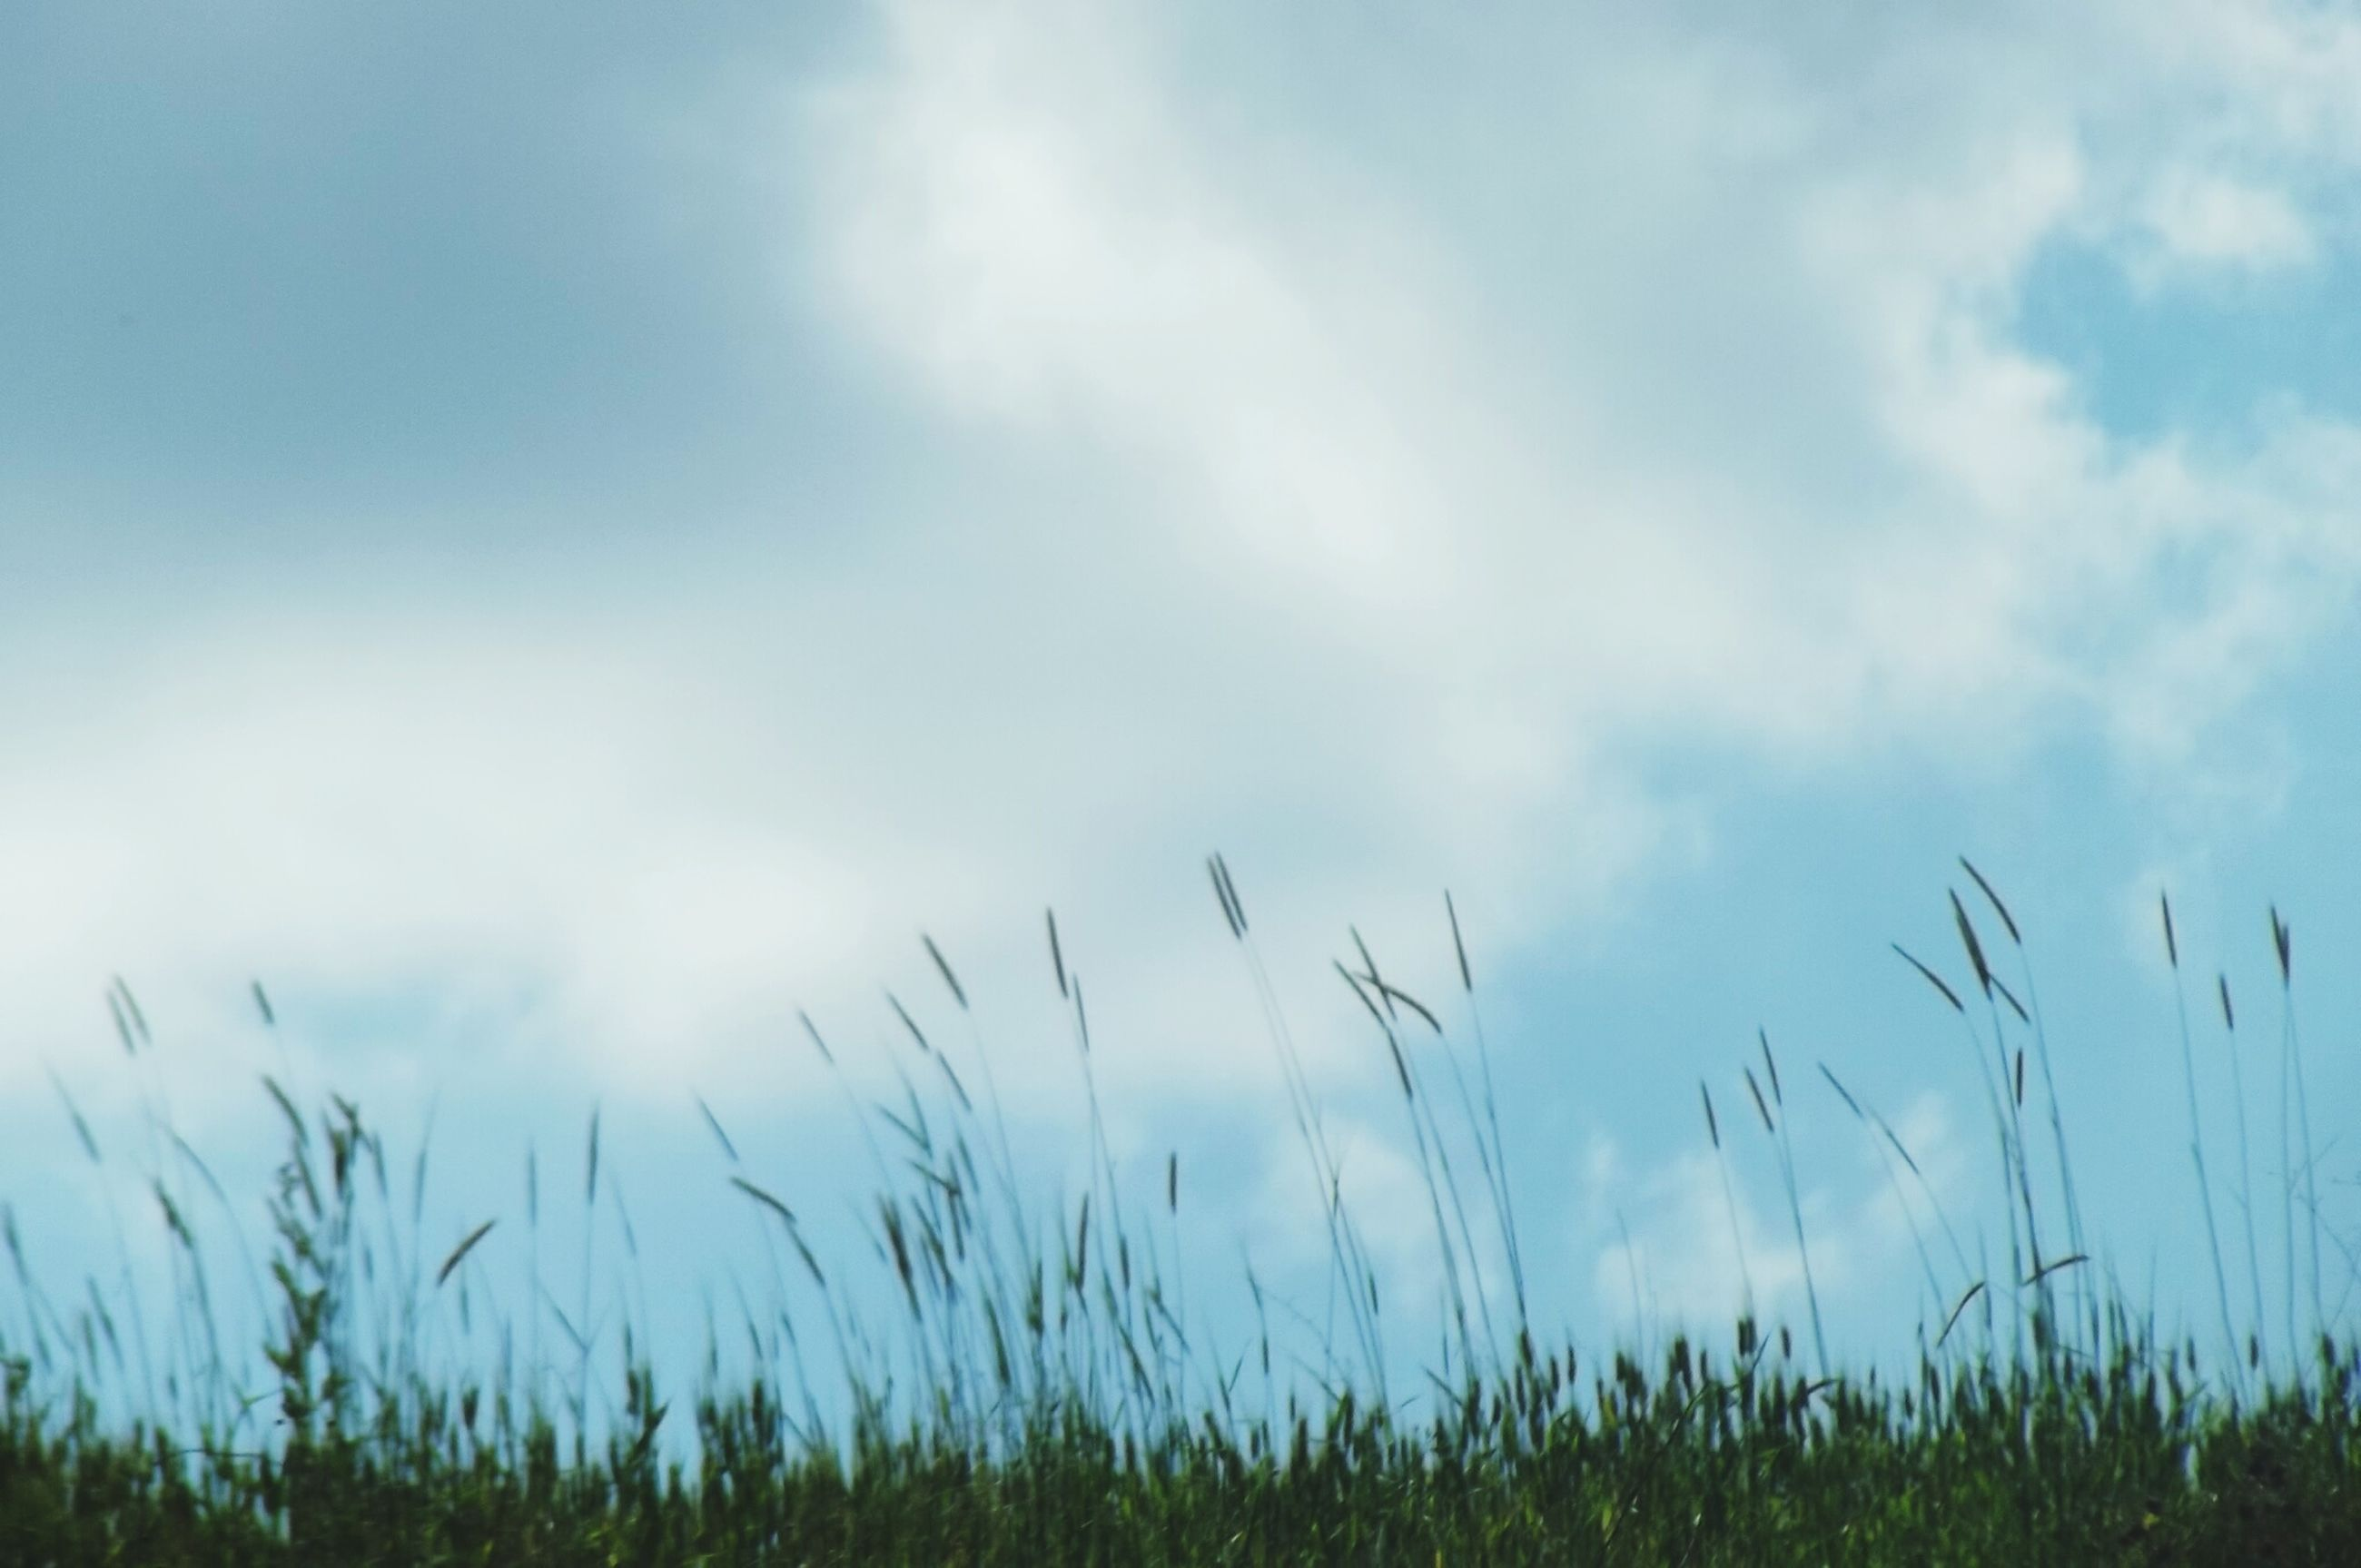 grass, sky, growth, nature, low angle view, tranquility, plant, tranquil scene, scenics, beauty in nature, cloud, field, blue, non-urban scene, cloud - sky, day, green, focus on foreground, outdoors, green color, countryside, surface level, atmospheric mood, remote, solitude, grass area, stalk, no people, uncultivated, reed